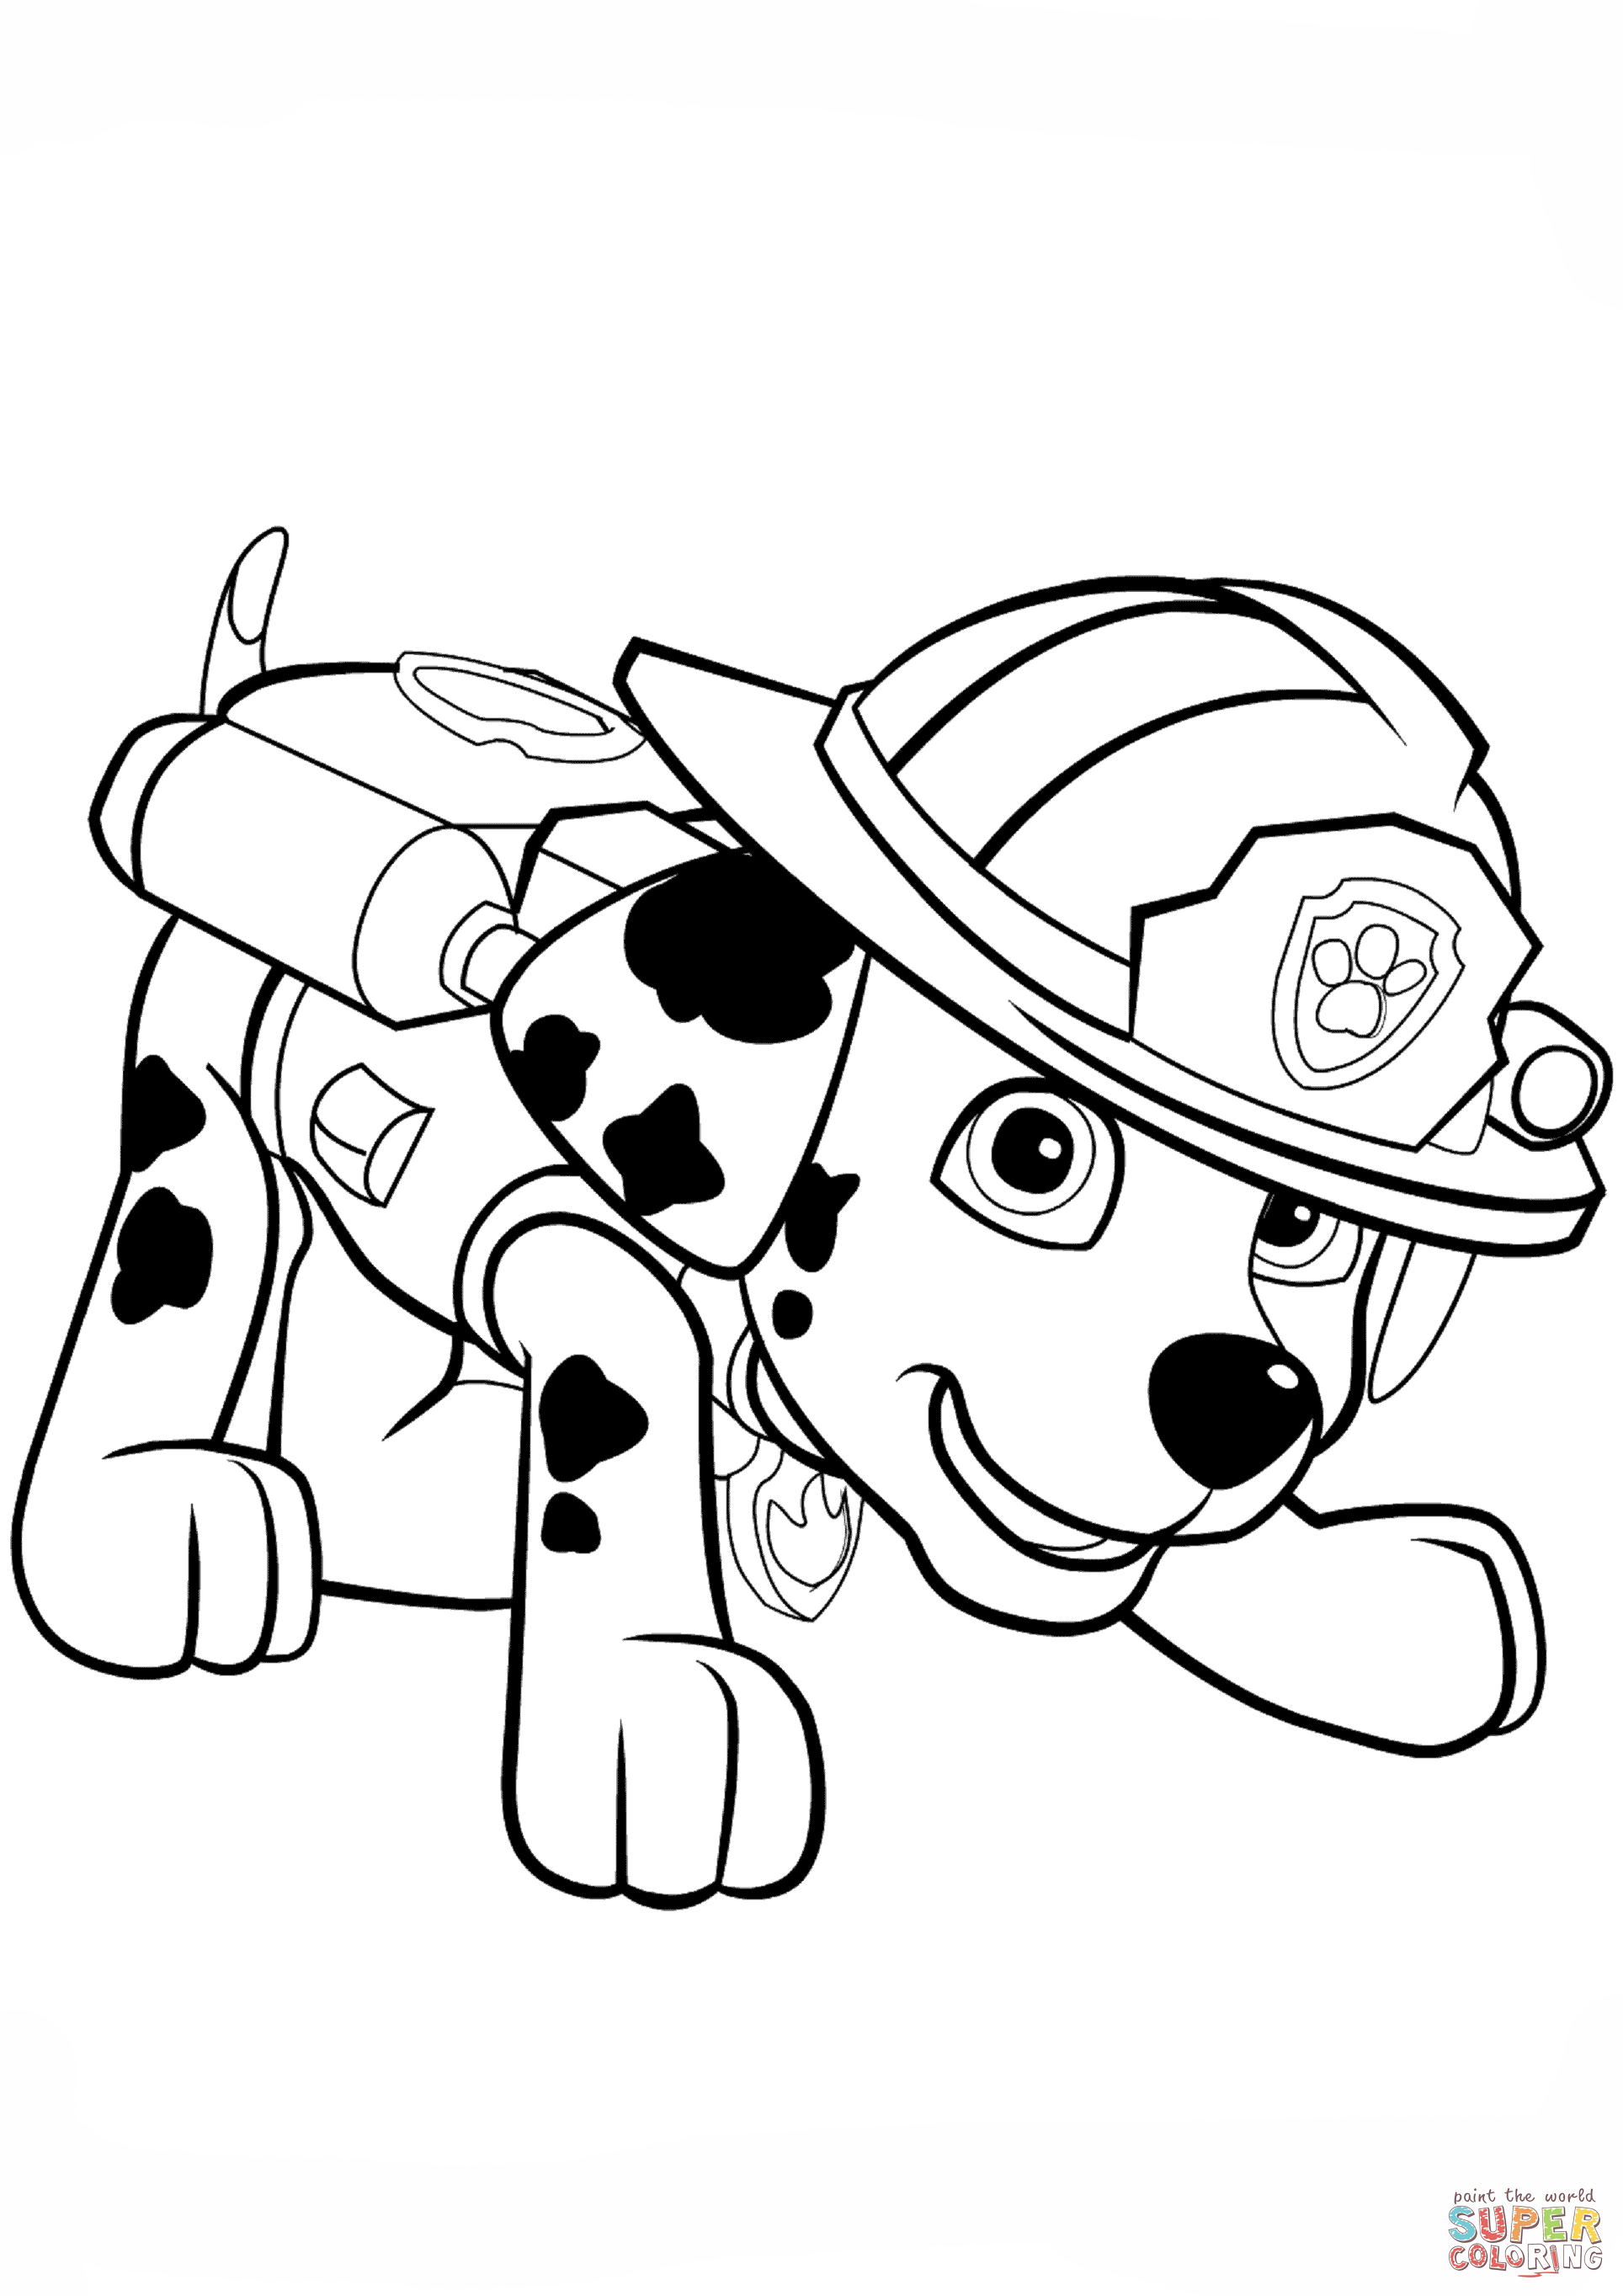 Coloring Pages Of Paw Patrol : Marshall paw patrol coloring pages printable print